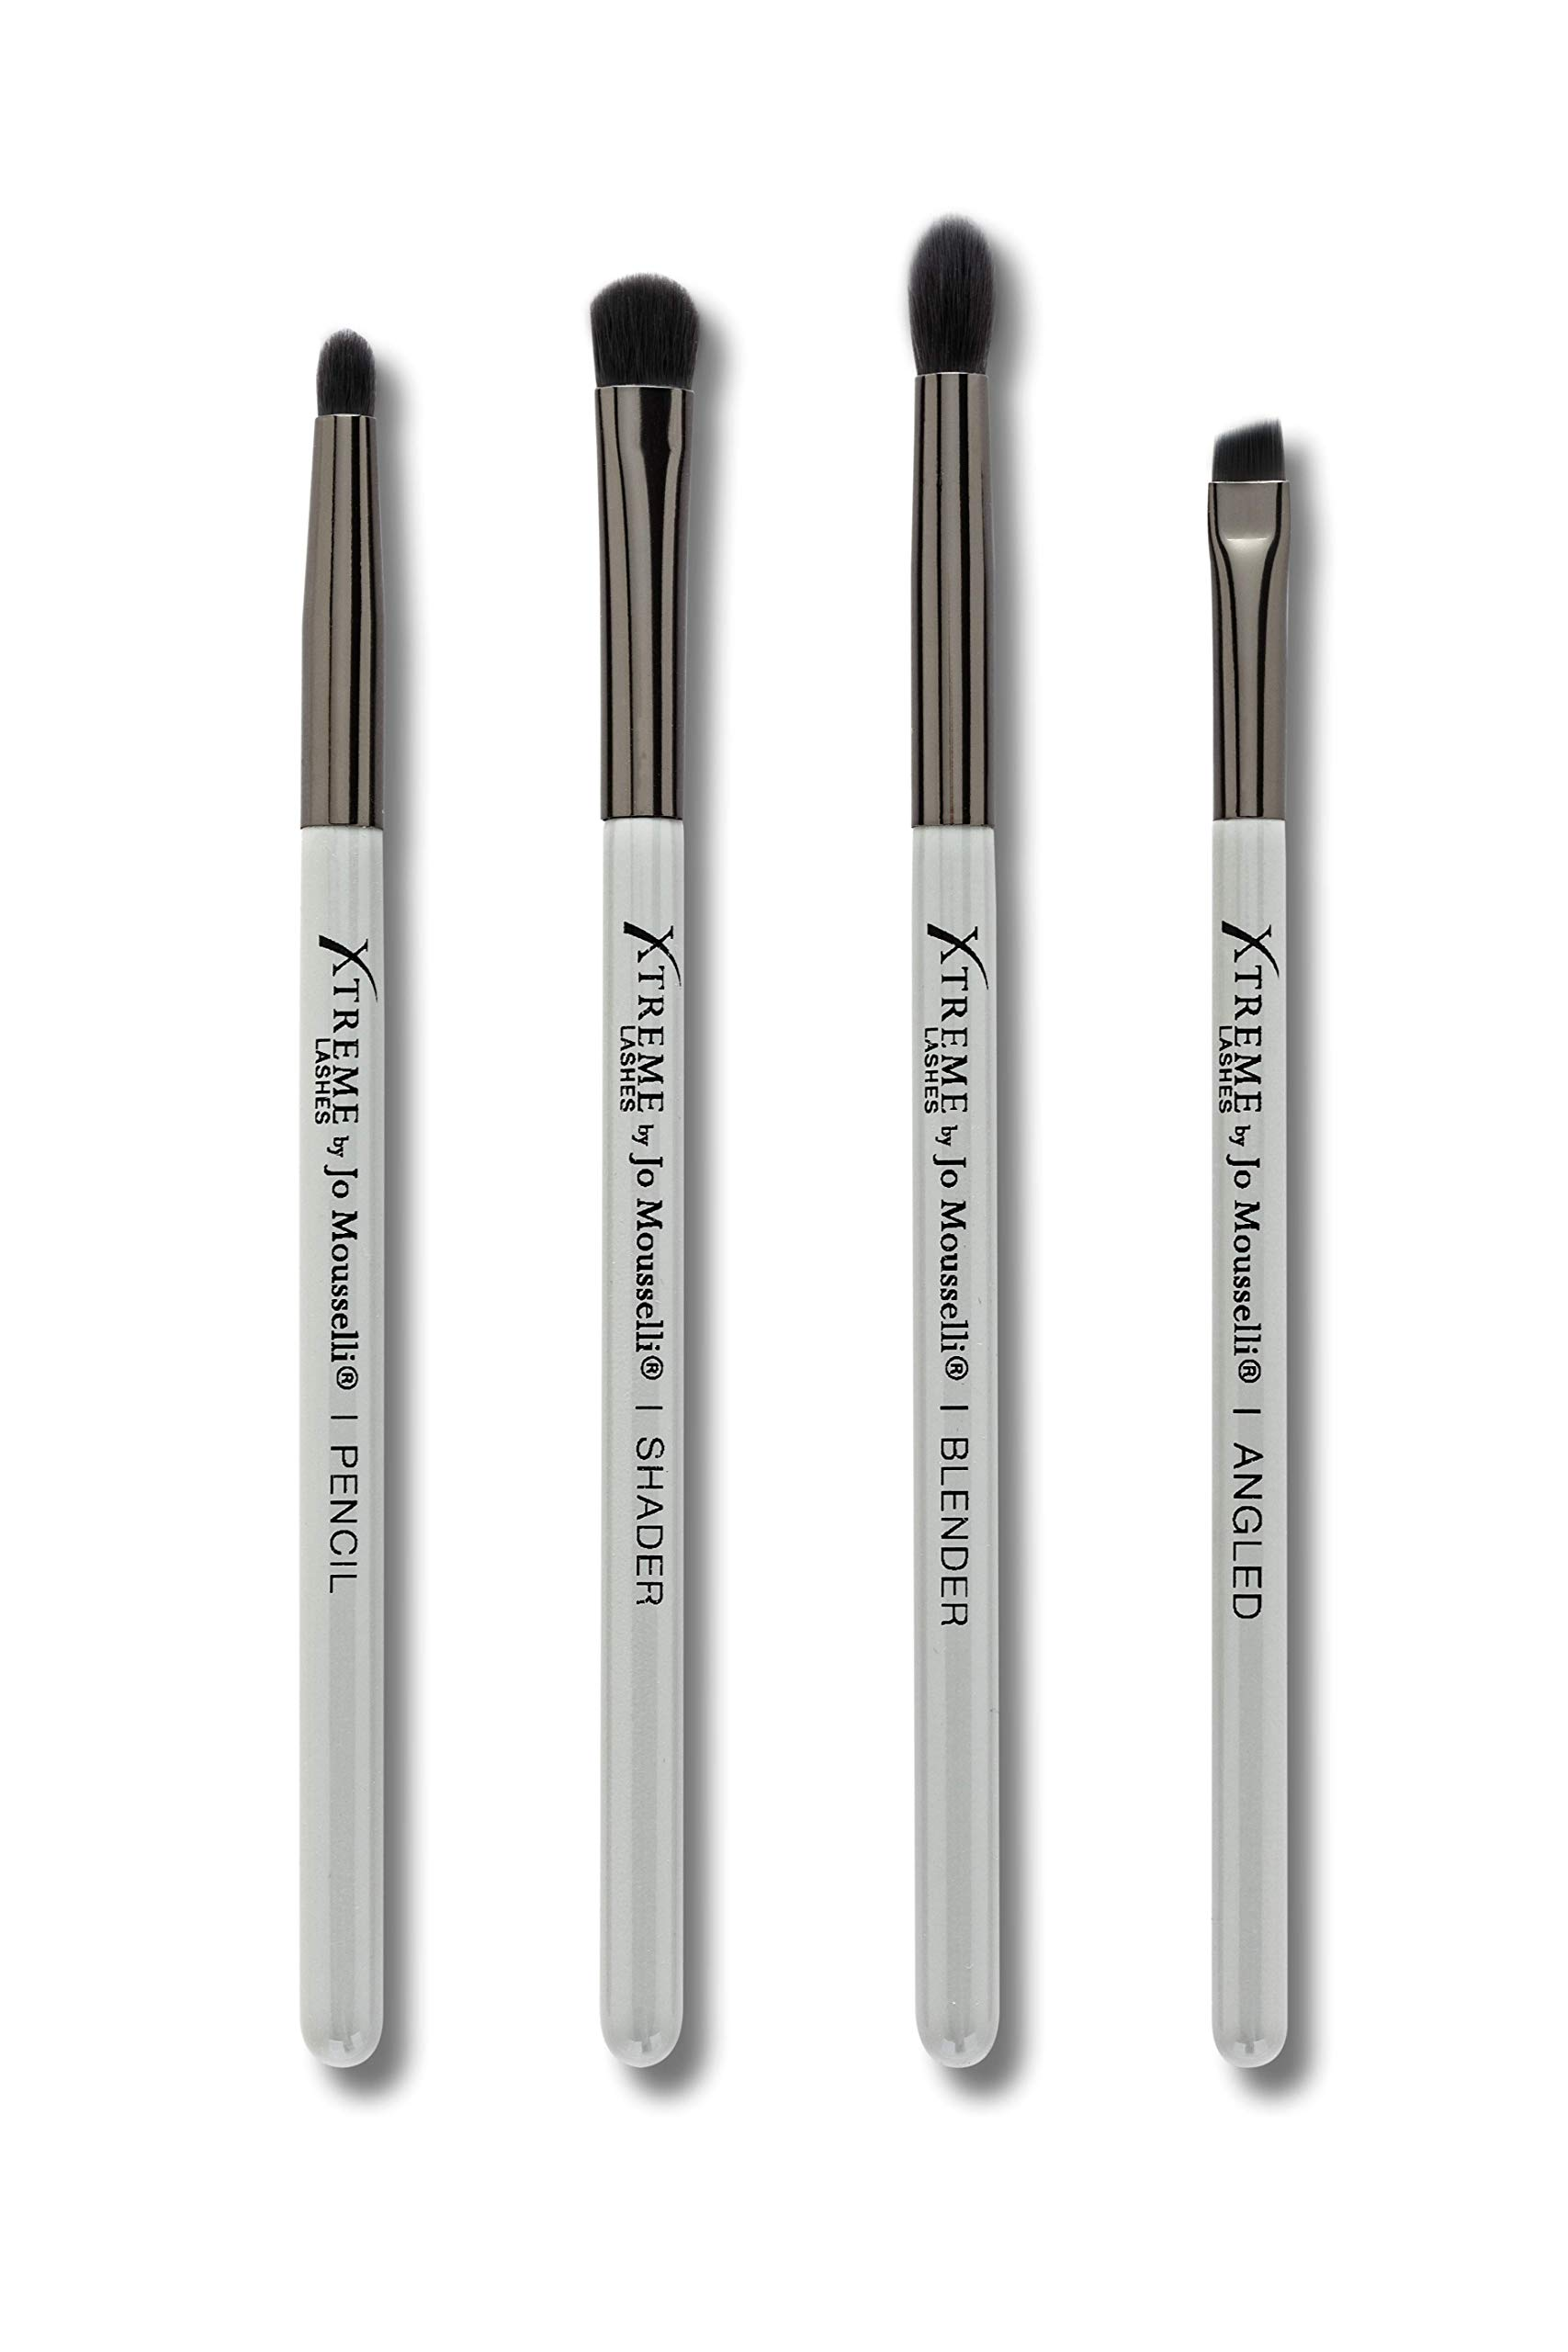 NEW Xtreme Lashes Eye Essentials Brush Set by Xtreme Lashes